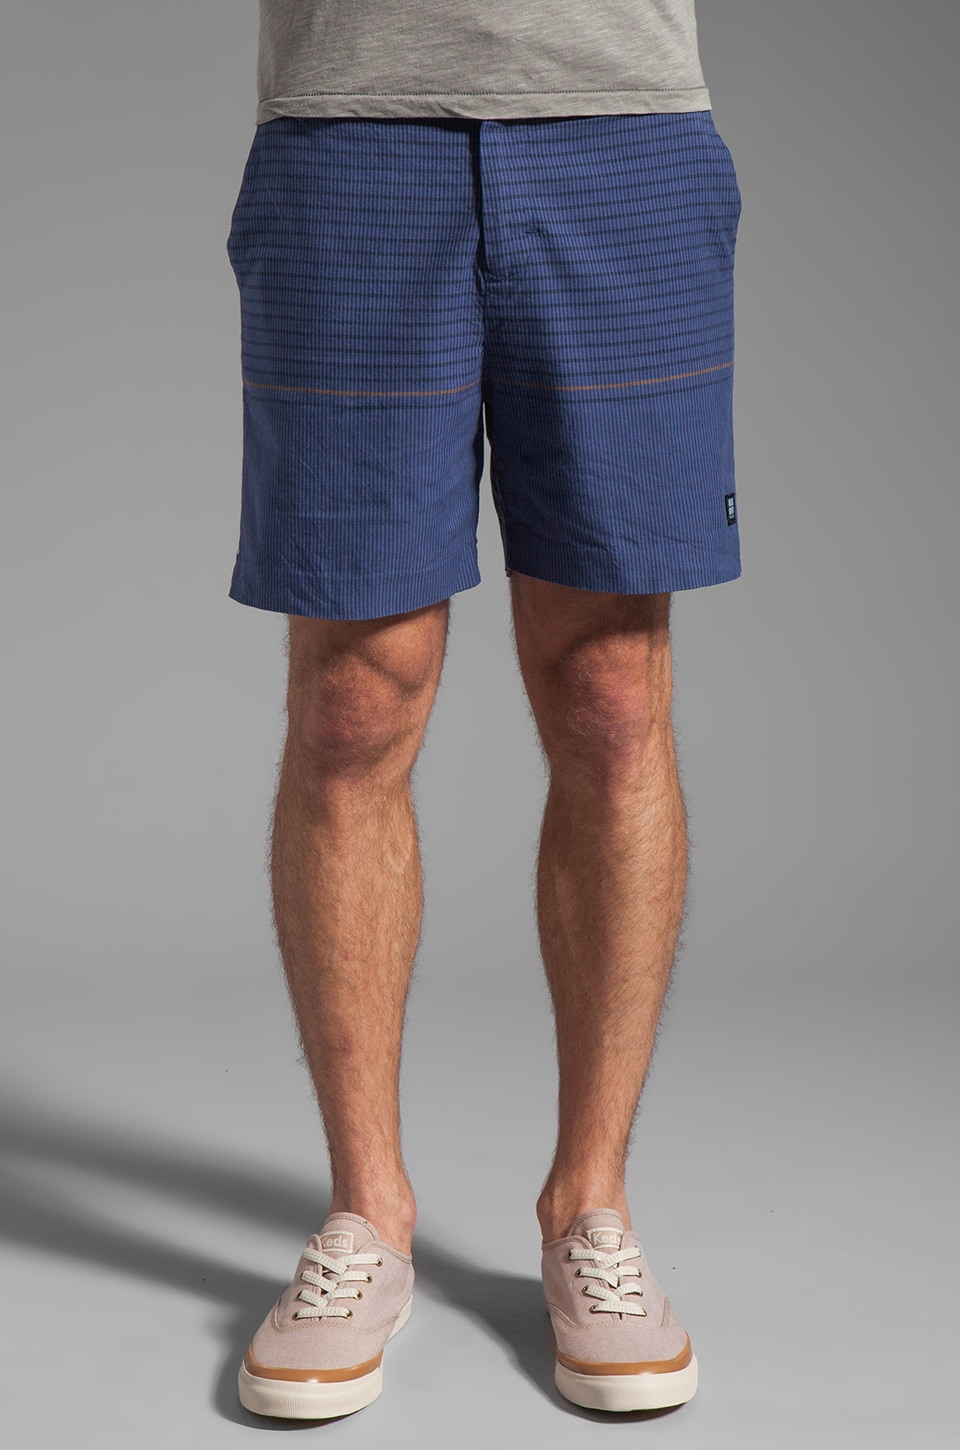 Insight Vector Rain Walkshort in Black Out Blue